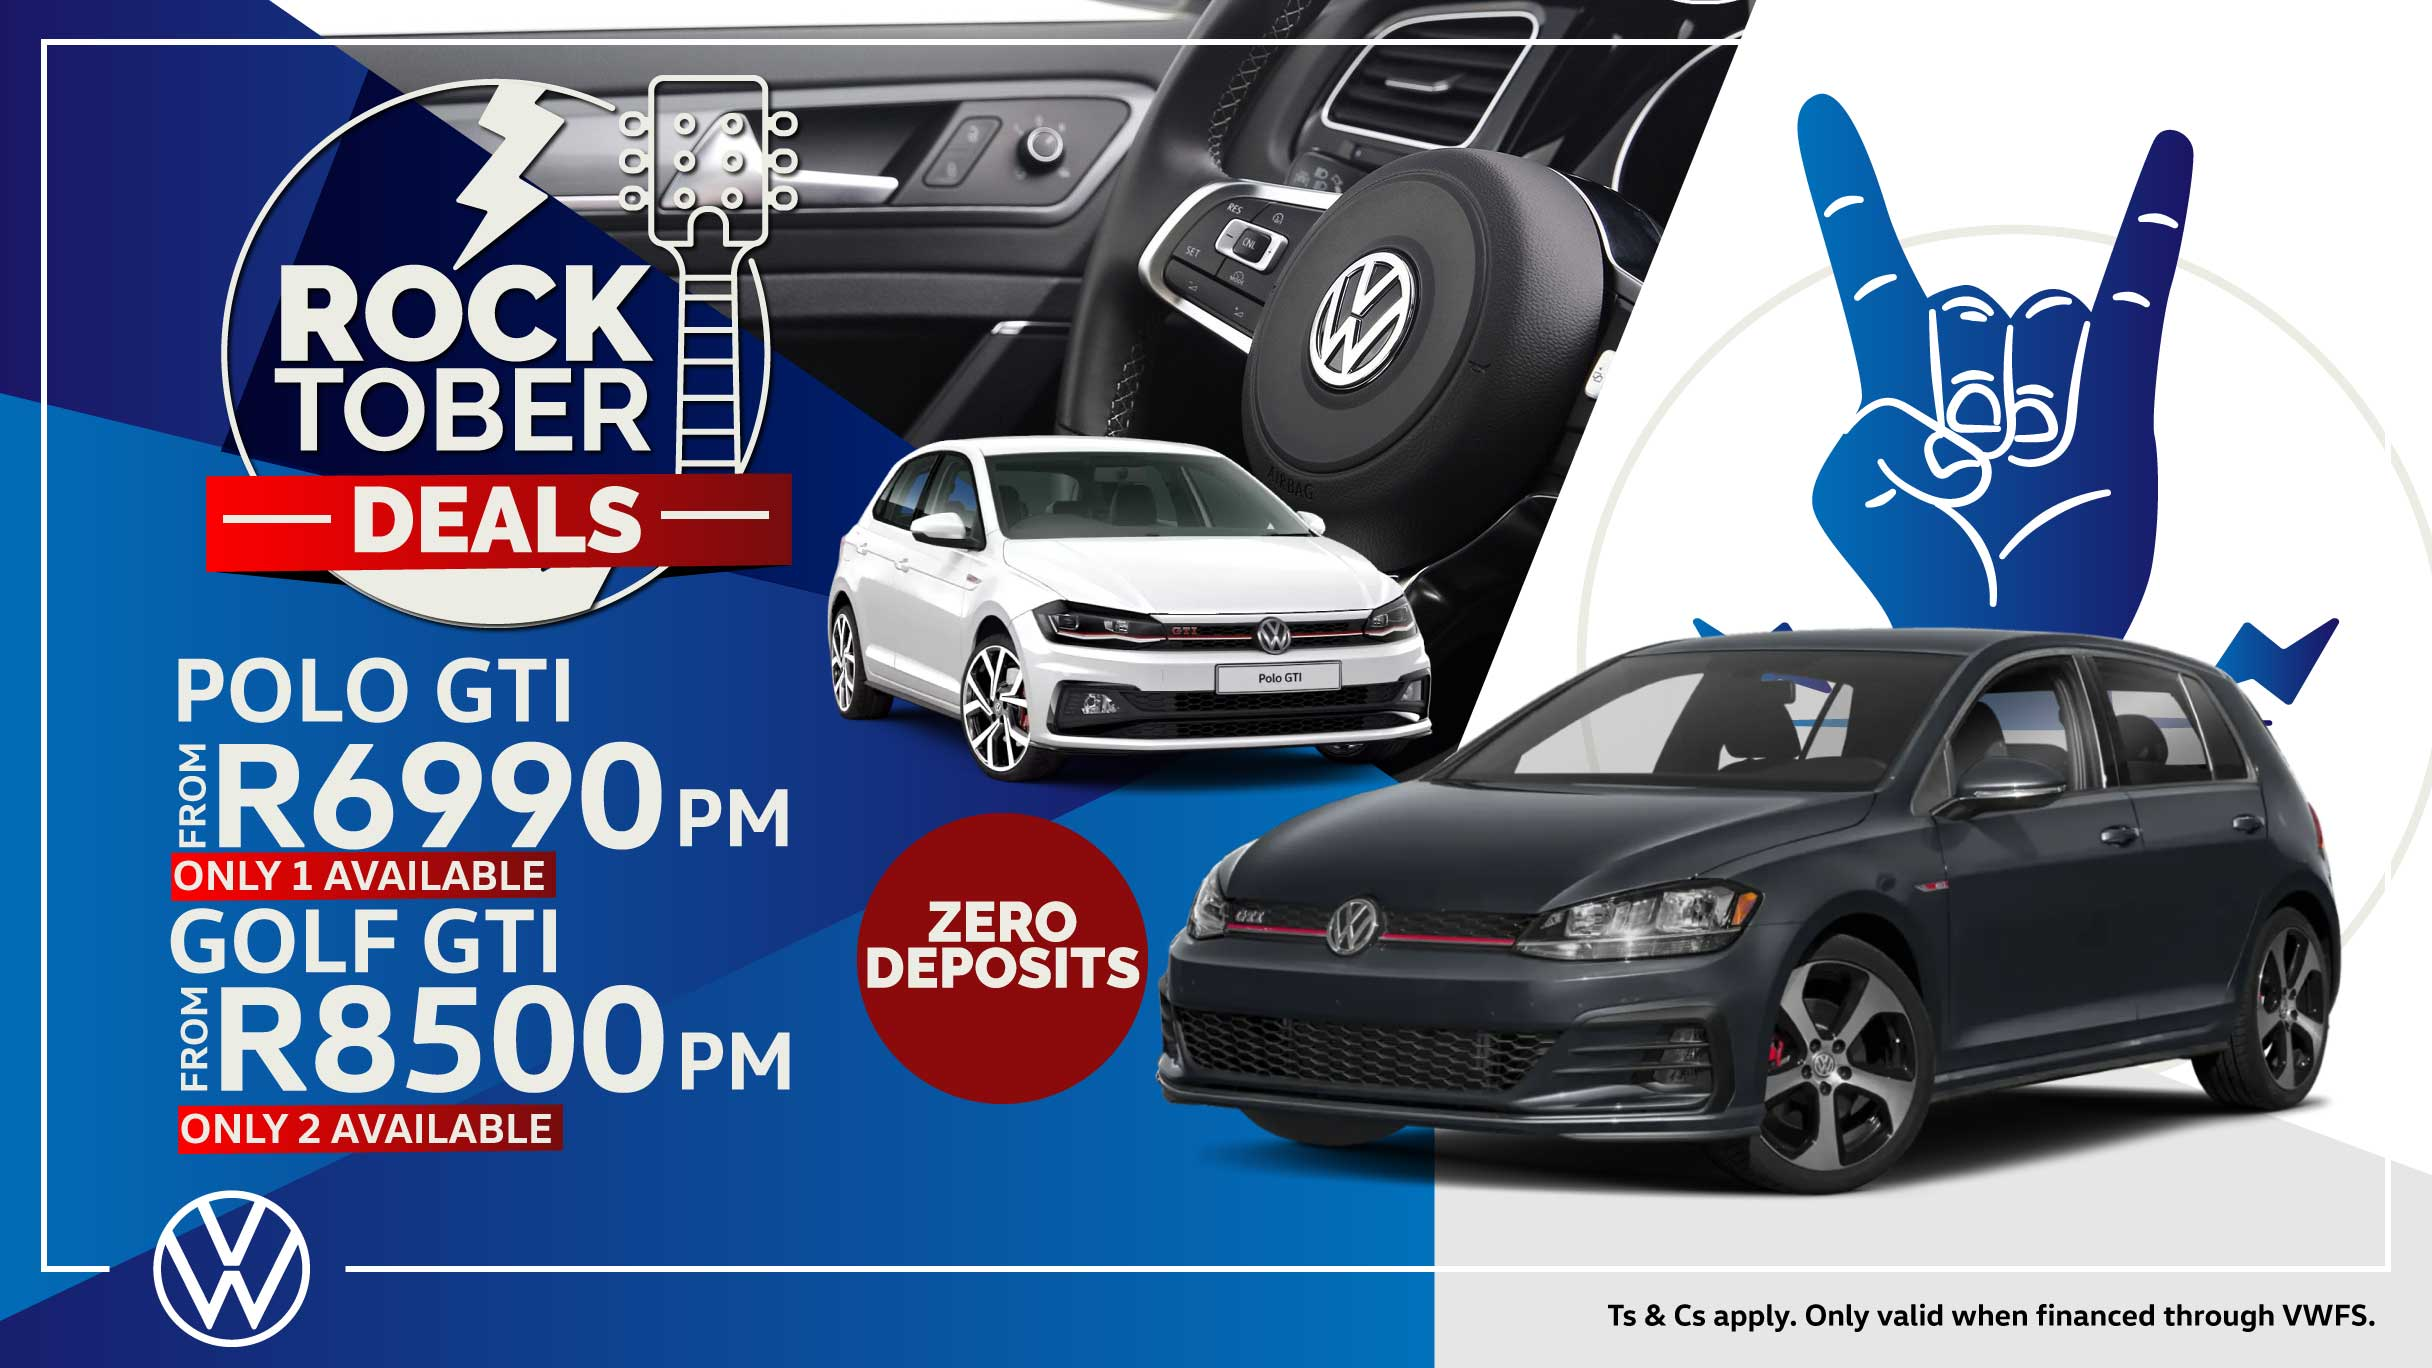 Polo and Golf Rocktober offer